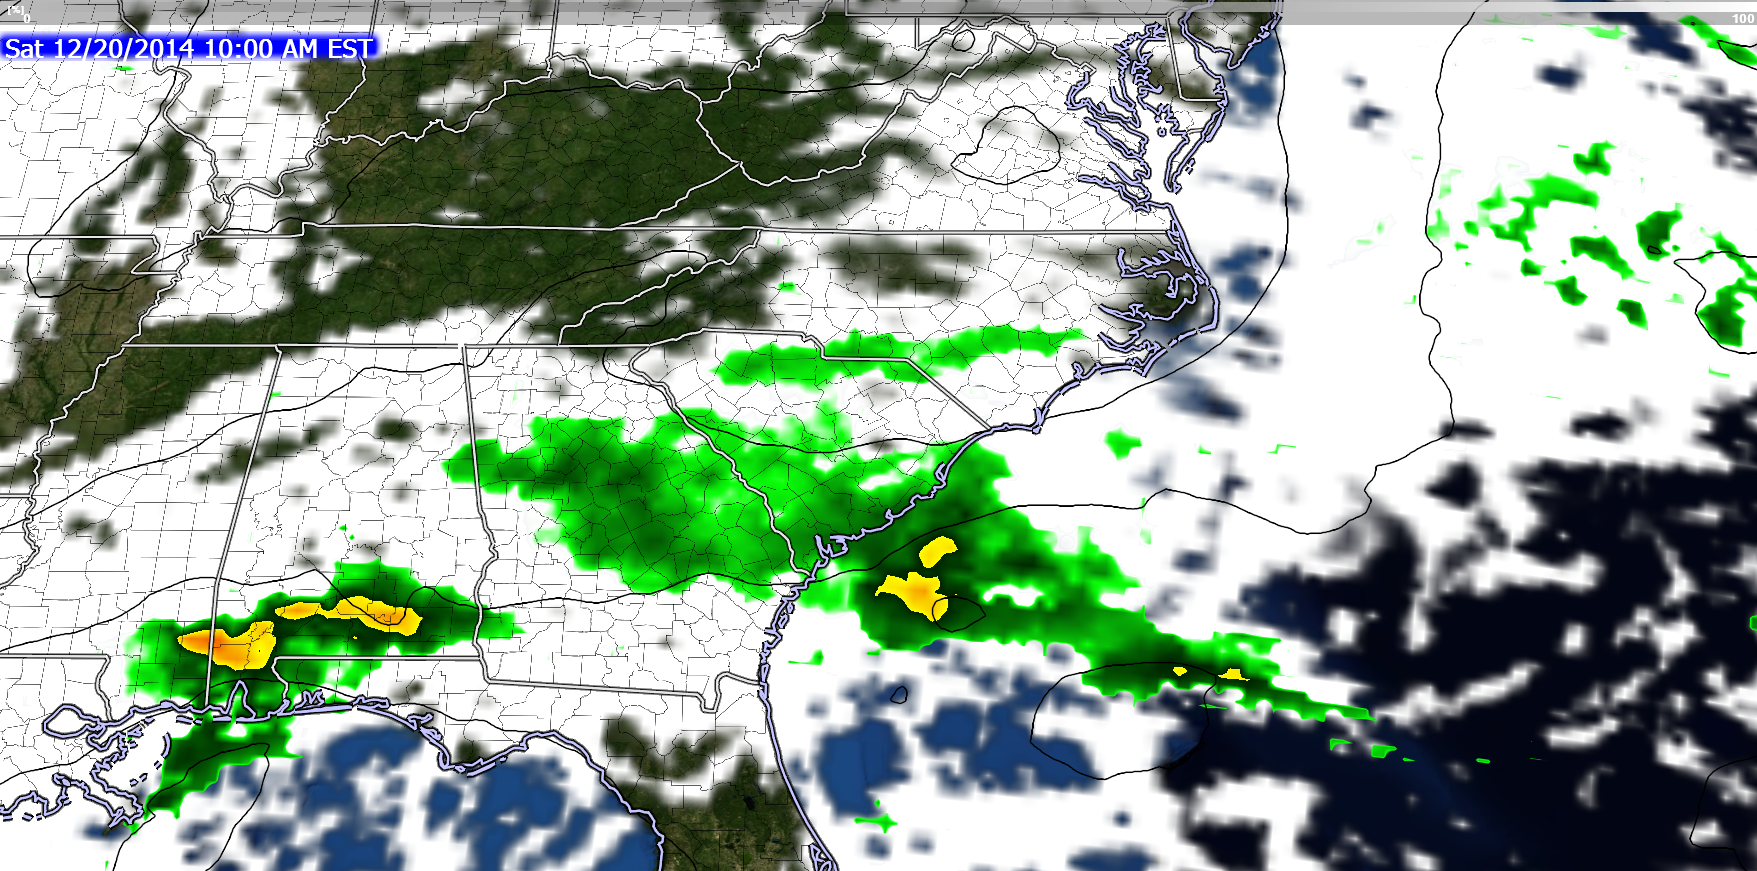 NAM forecast model shows very light, scattered rain across southern sections of ENC on Saturday.